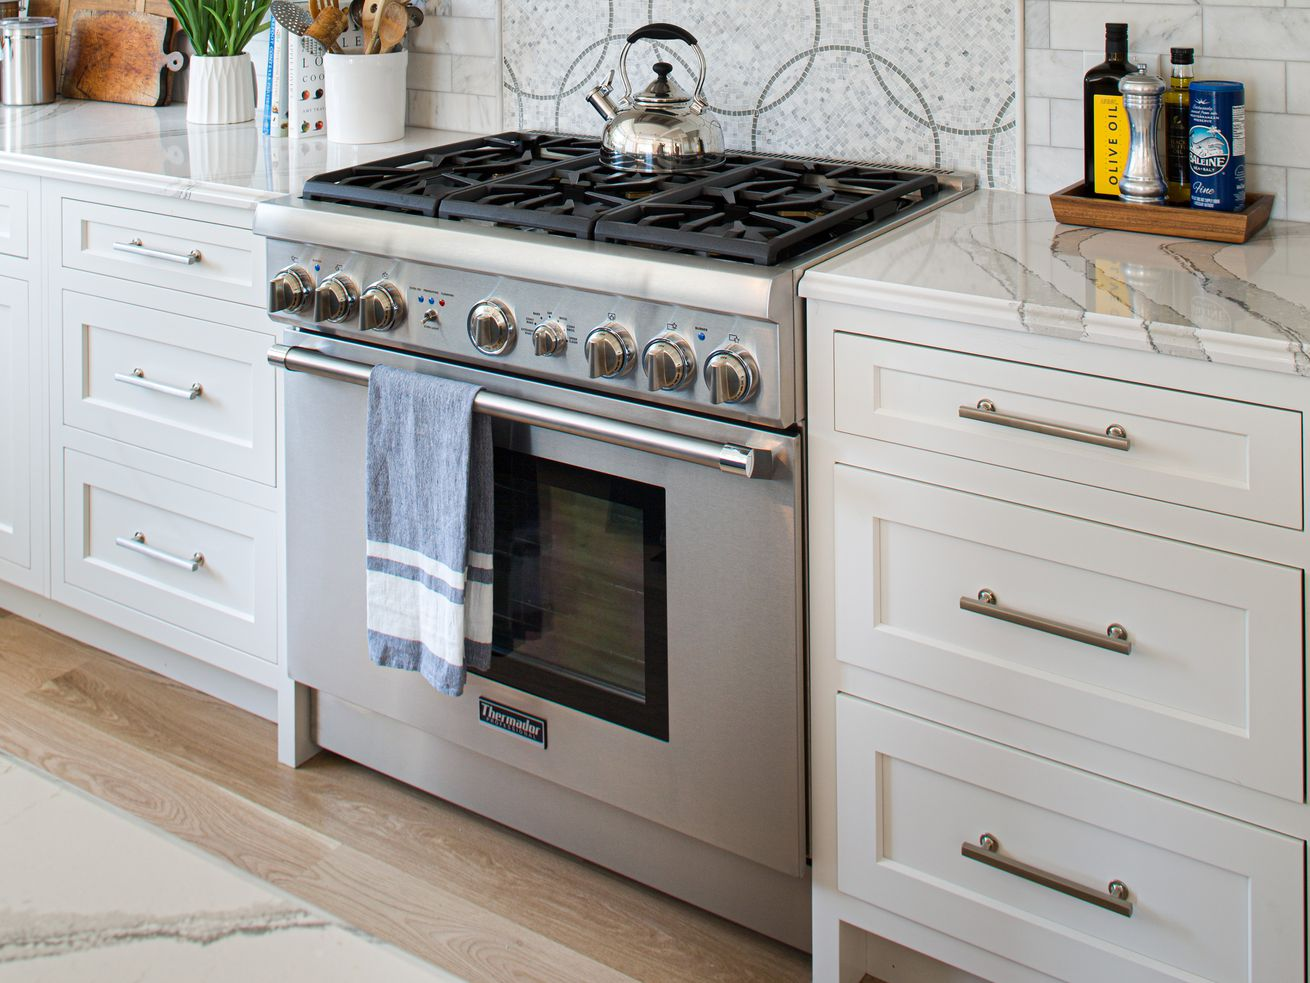 A gas oven in a modern kitchen.